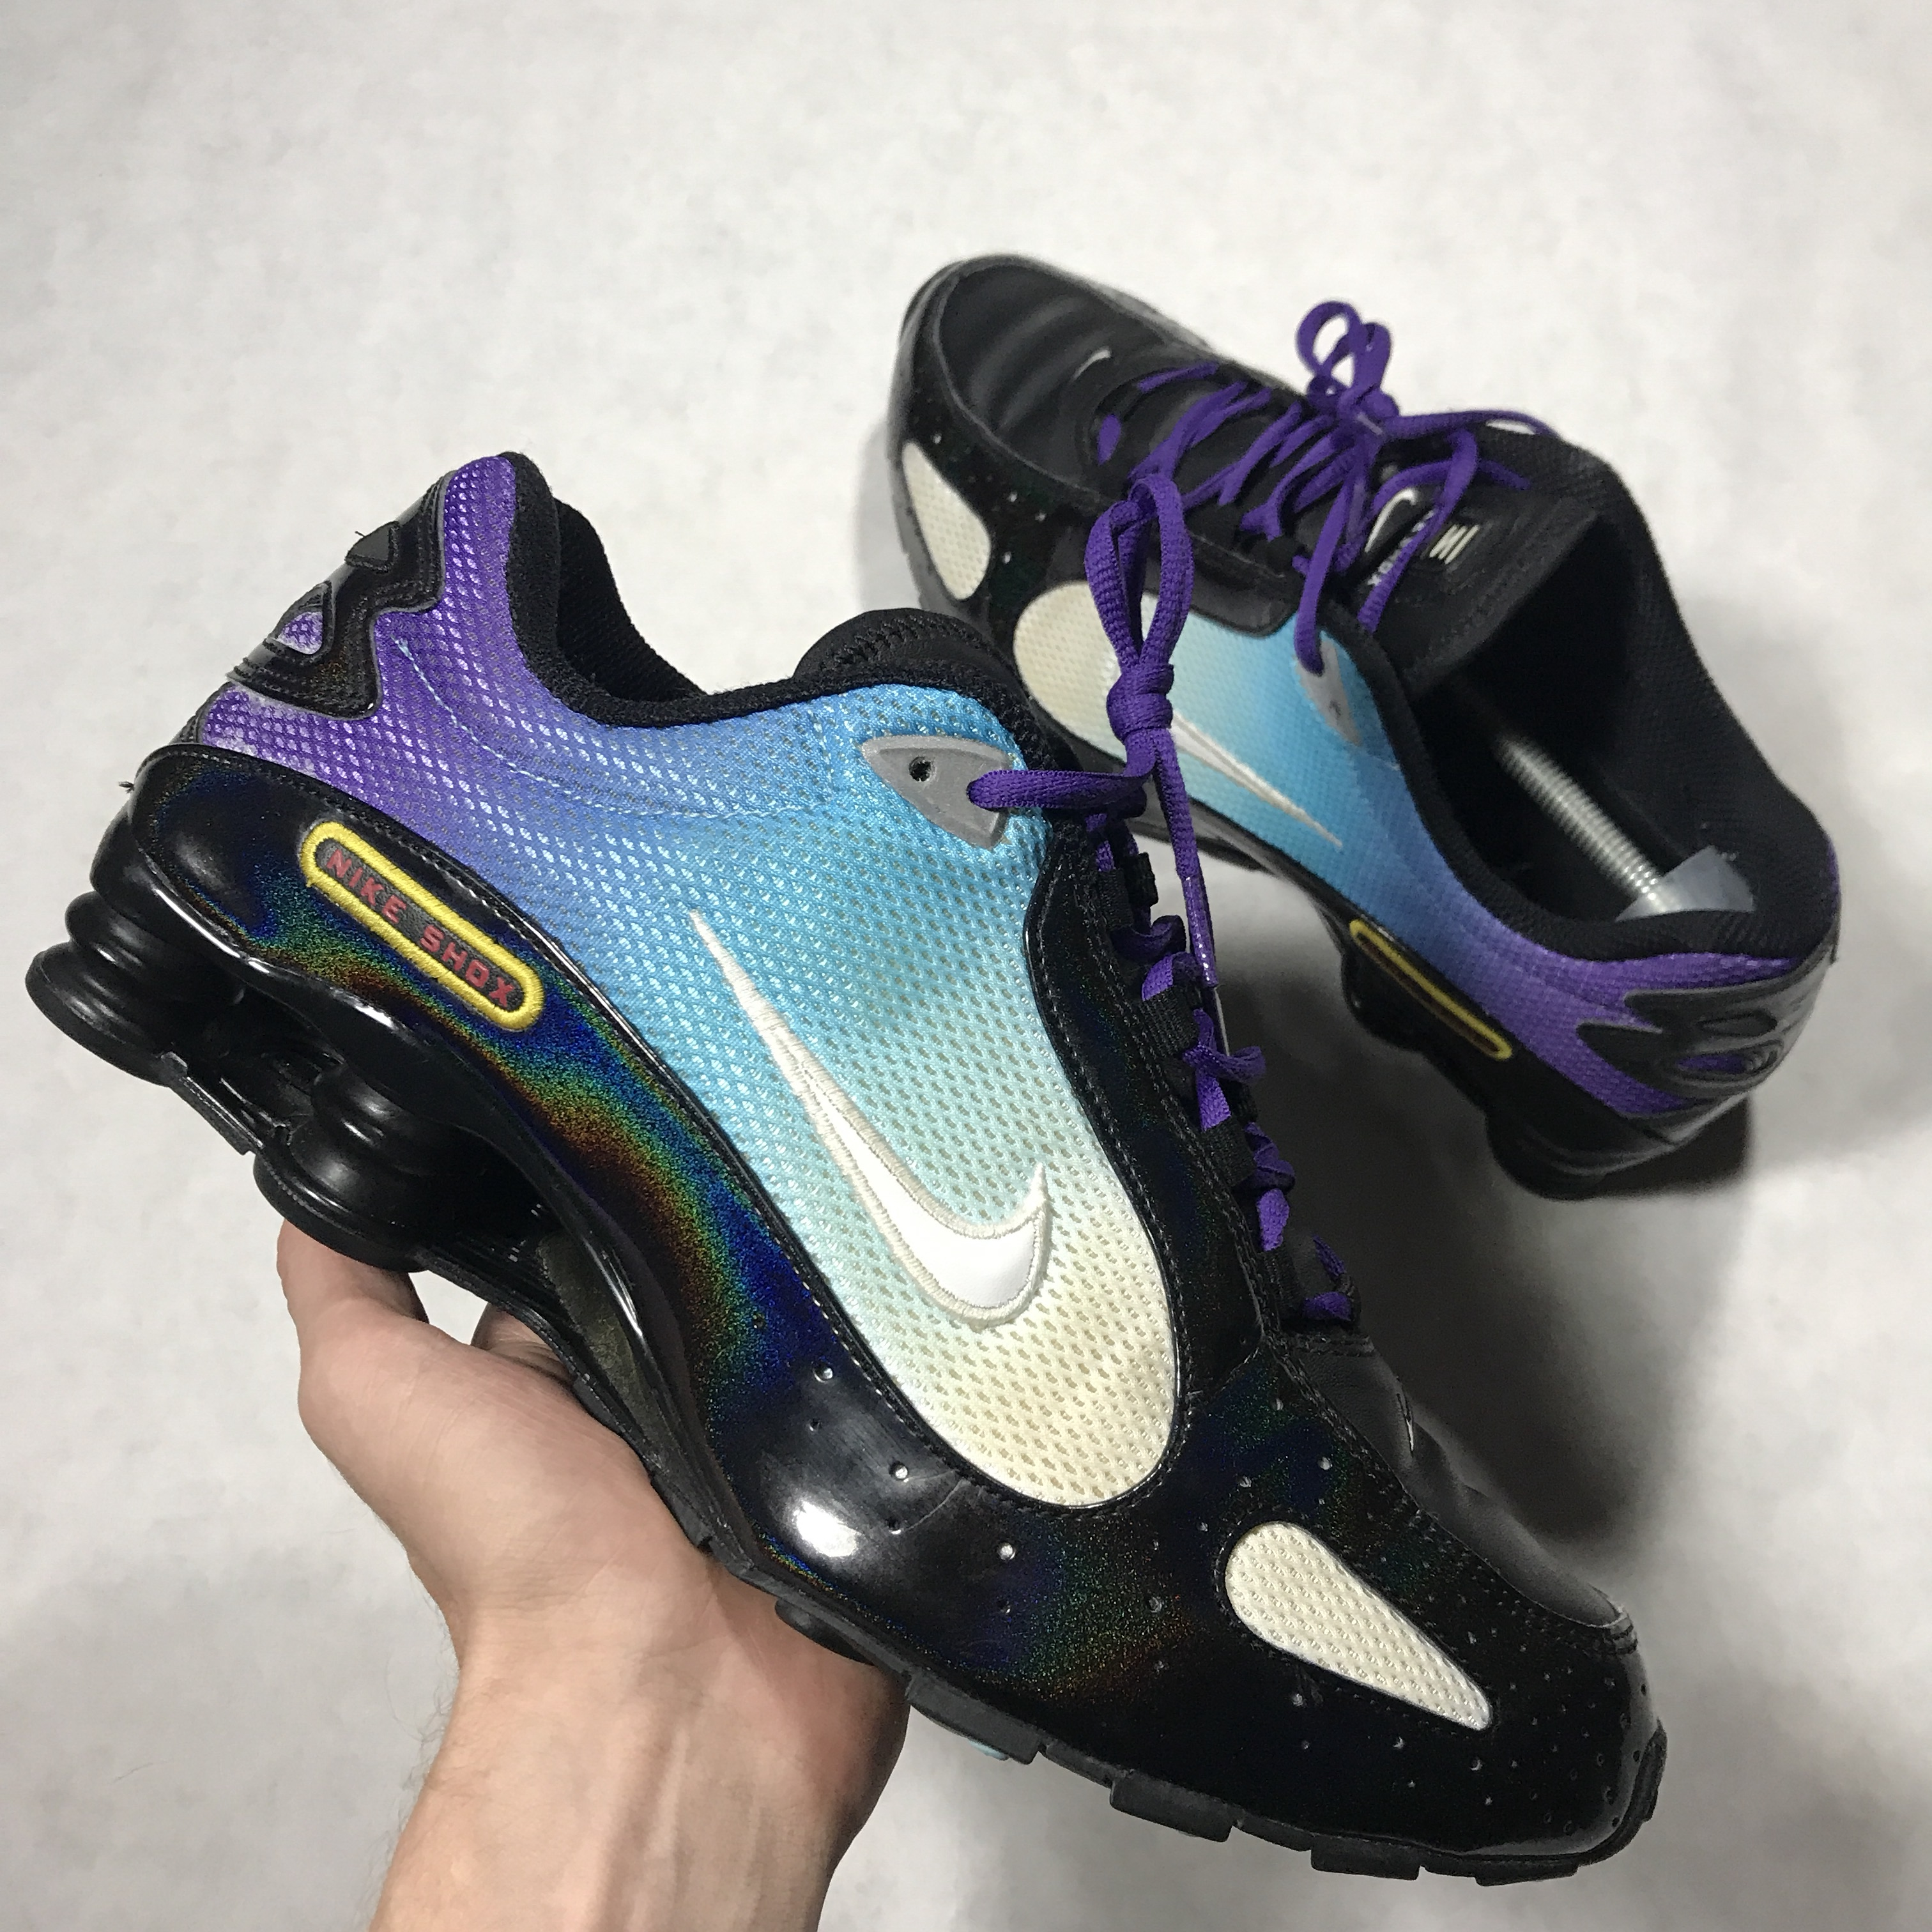 detailed look 9a407 8af6c Vtg 2008 Nike shox monster